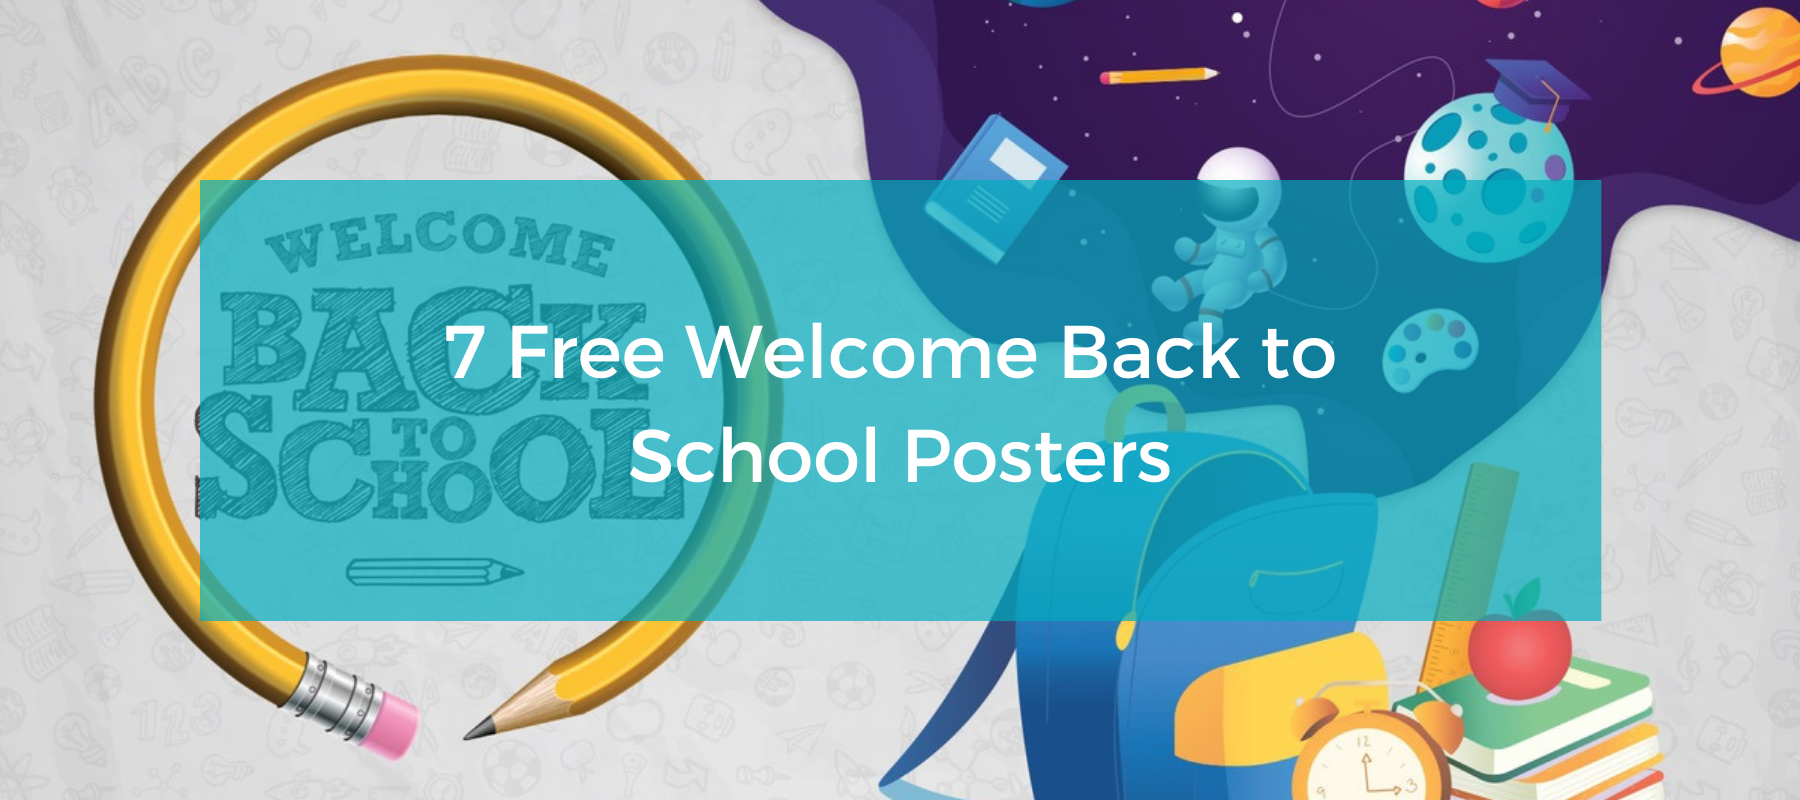 7 free welcome back to school posters